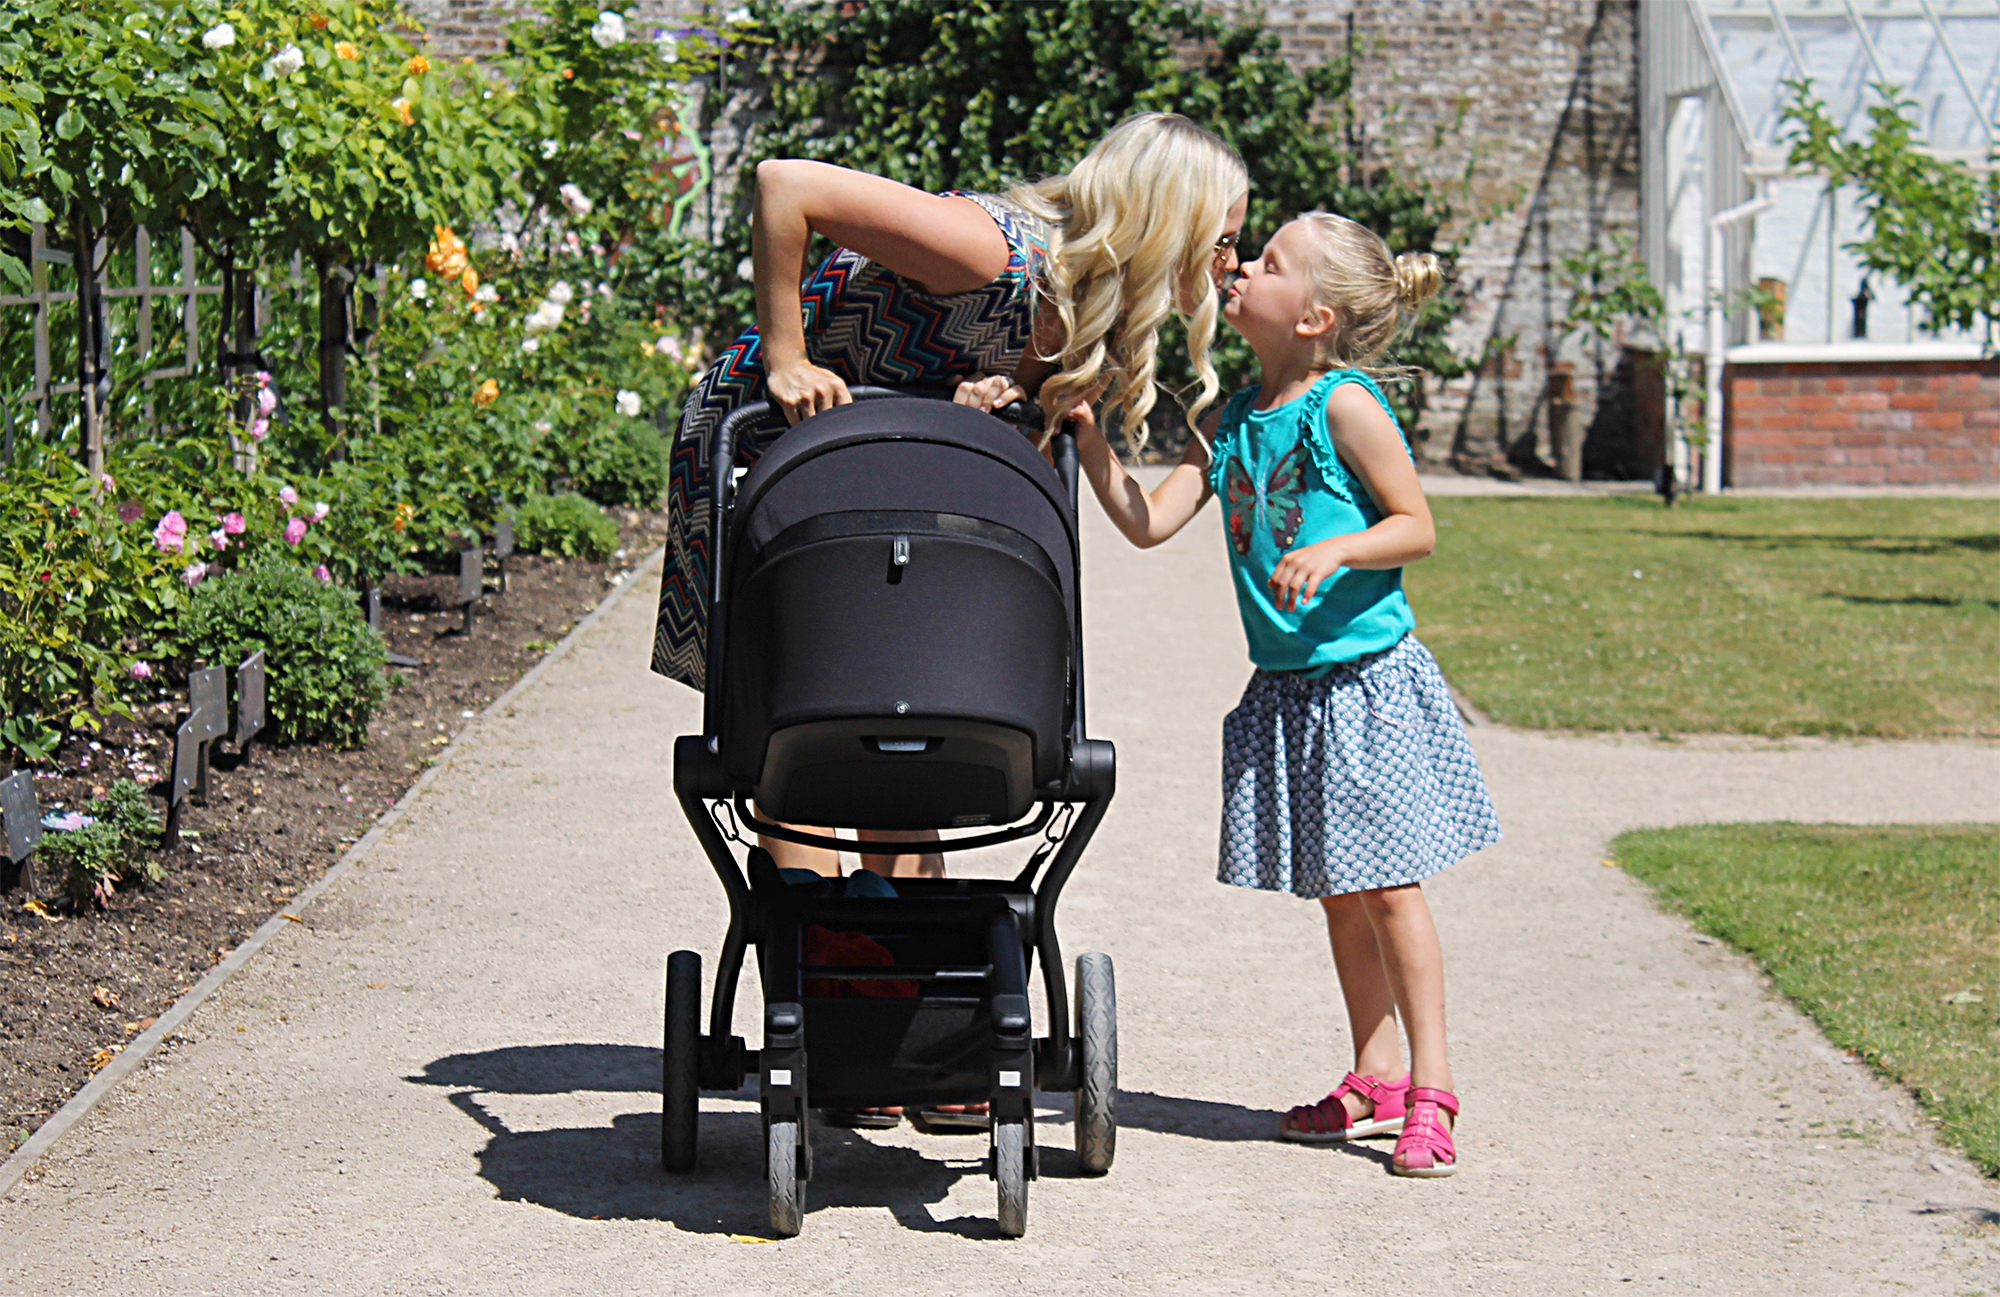 A woman bending down to give her daughter a kiss while pushing a black Joolz Hub travel system